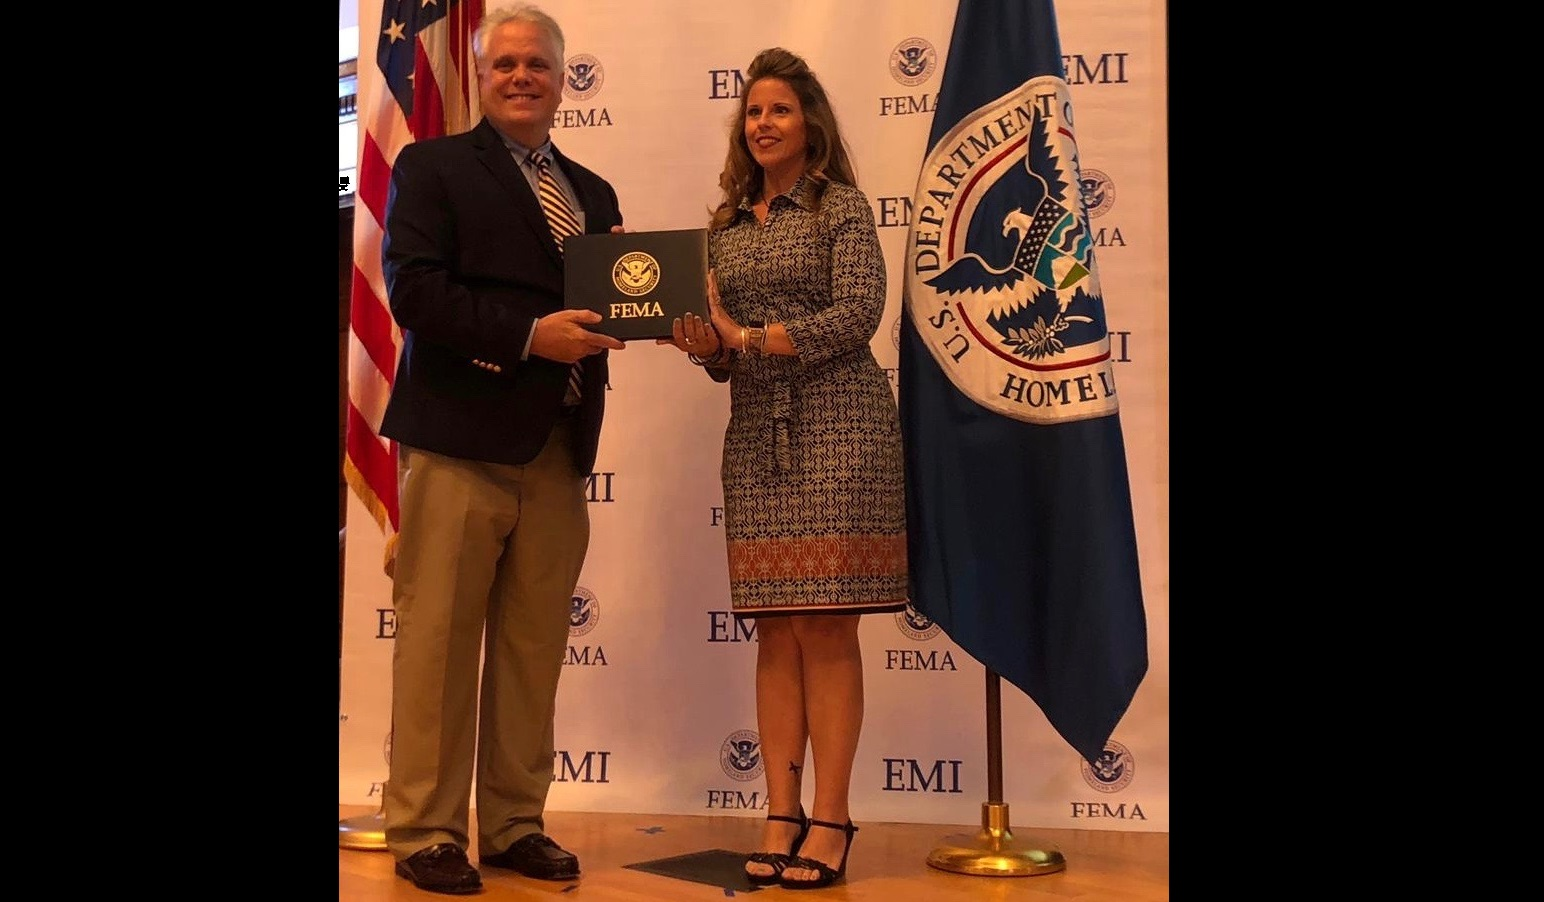 Completing a year-long professional development program, Ashley McDonald, Public Information Officer/Programs Coordinator for Rutherford County Government, joins less than 70 others across the U.S. as a recognized Master Public Information Officer (MPIO).